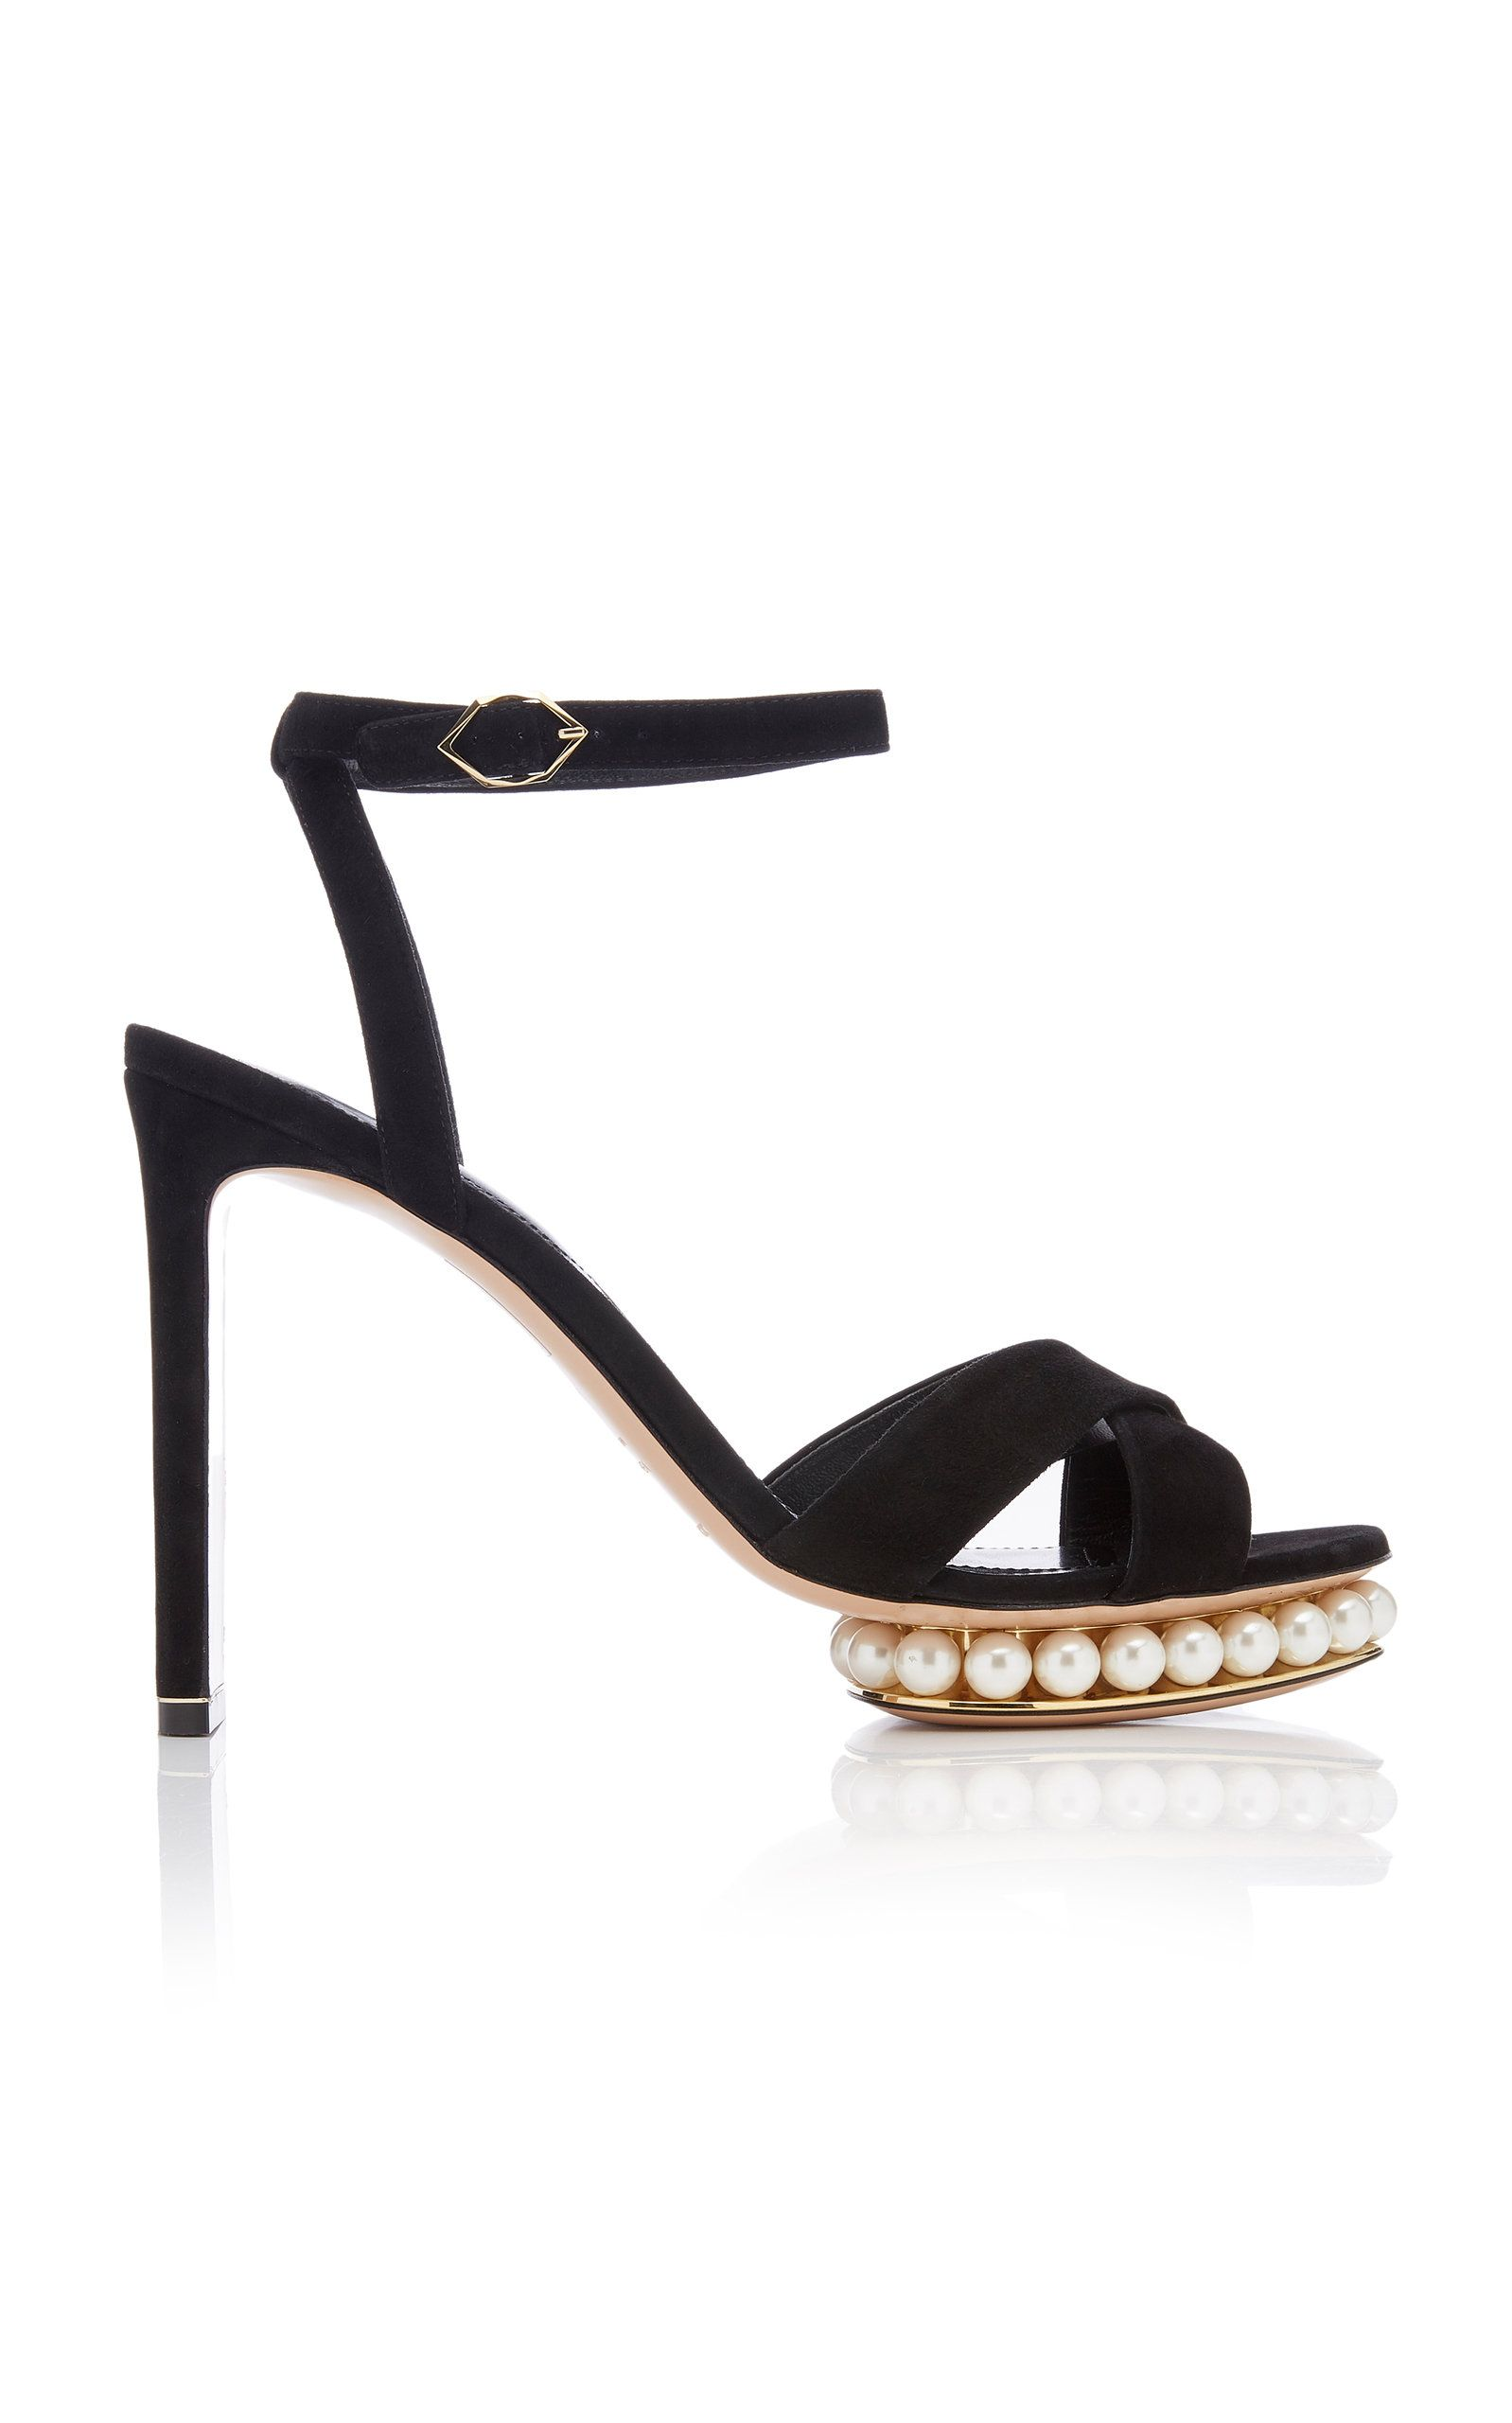 c59247b225613 NICHOLAS KIRKWOOD: Casati Embellished Leather Platform Sandals ...